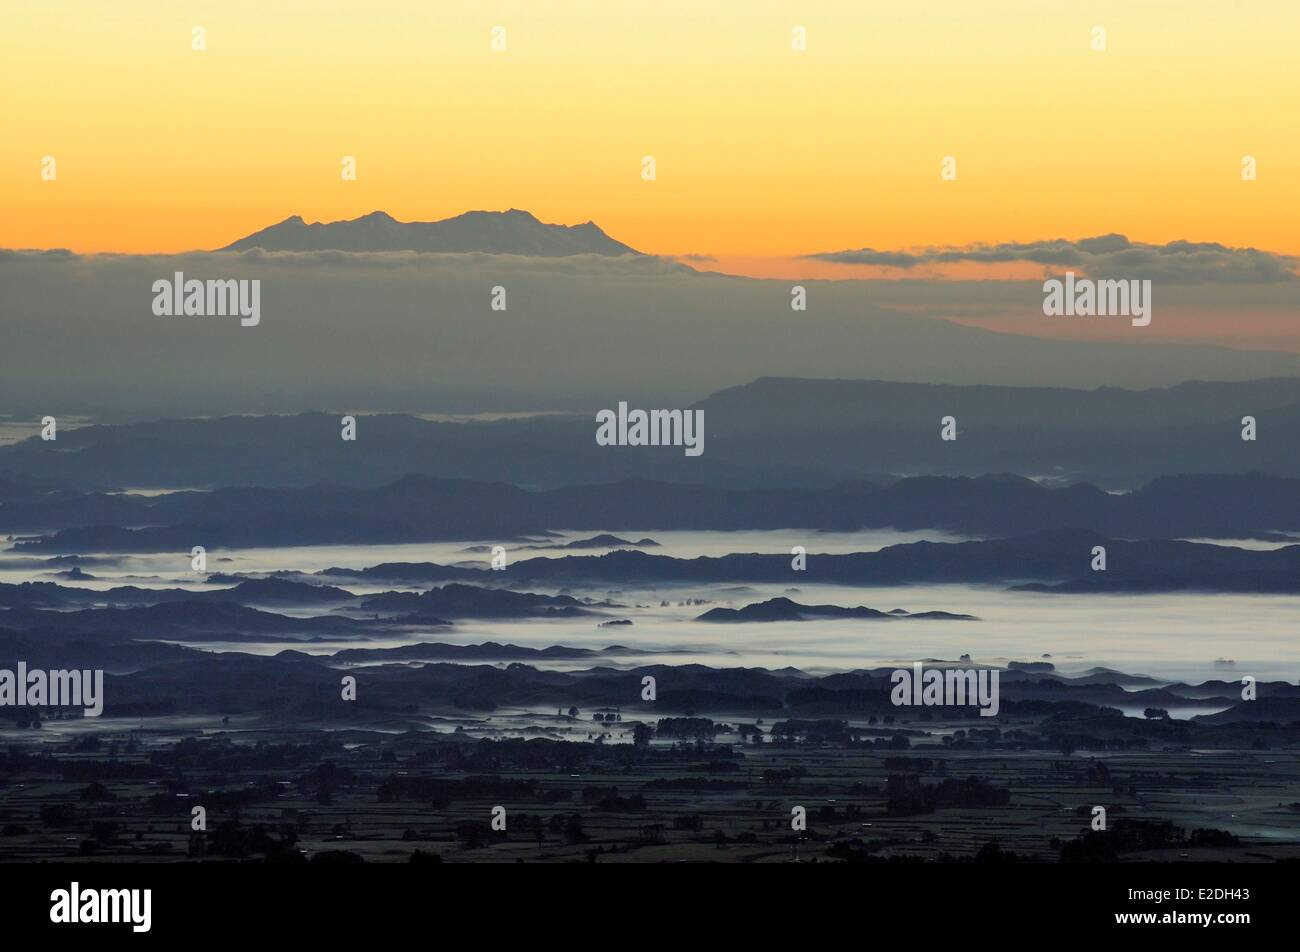 New Zealand, North island, Egmont National Park, panorama from the Mount Taranaki before sunrise - Stock Image